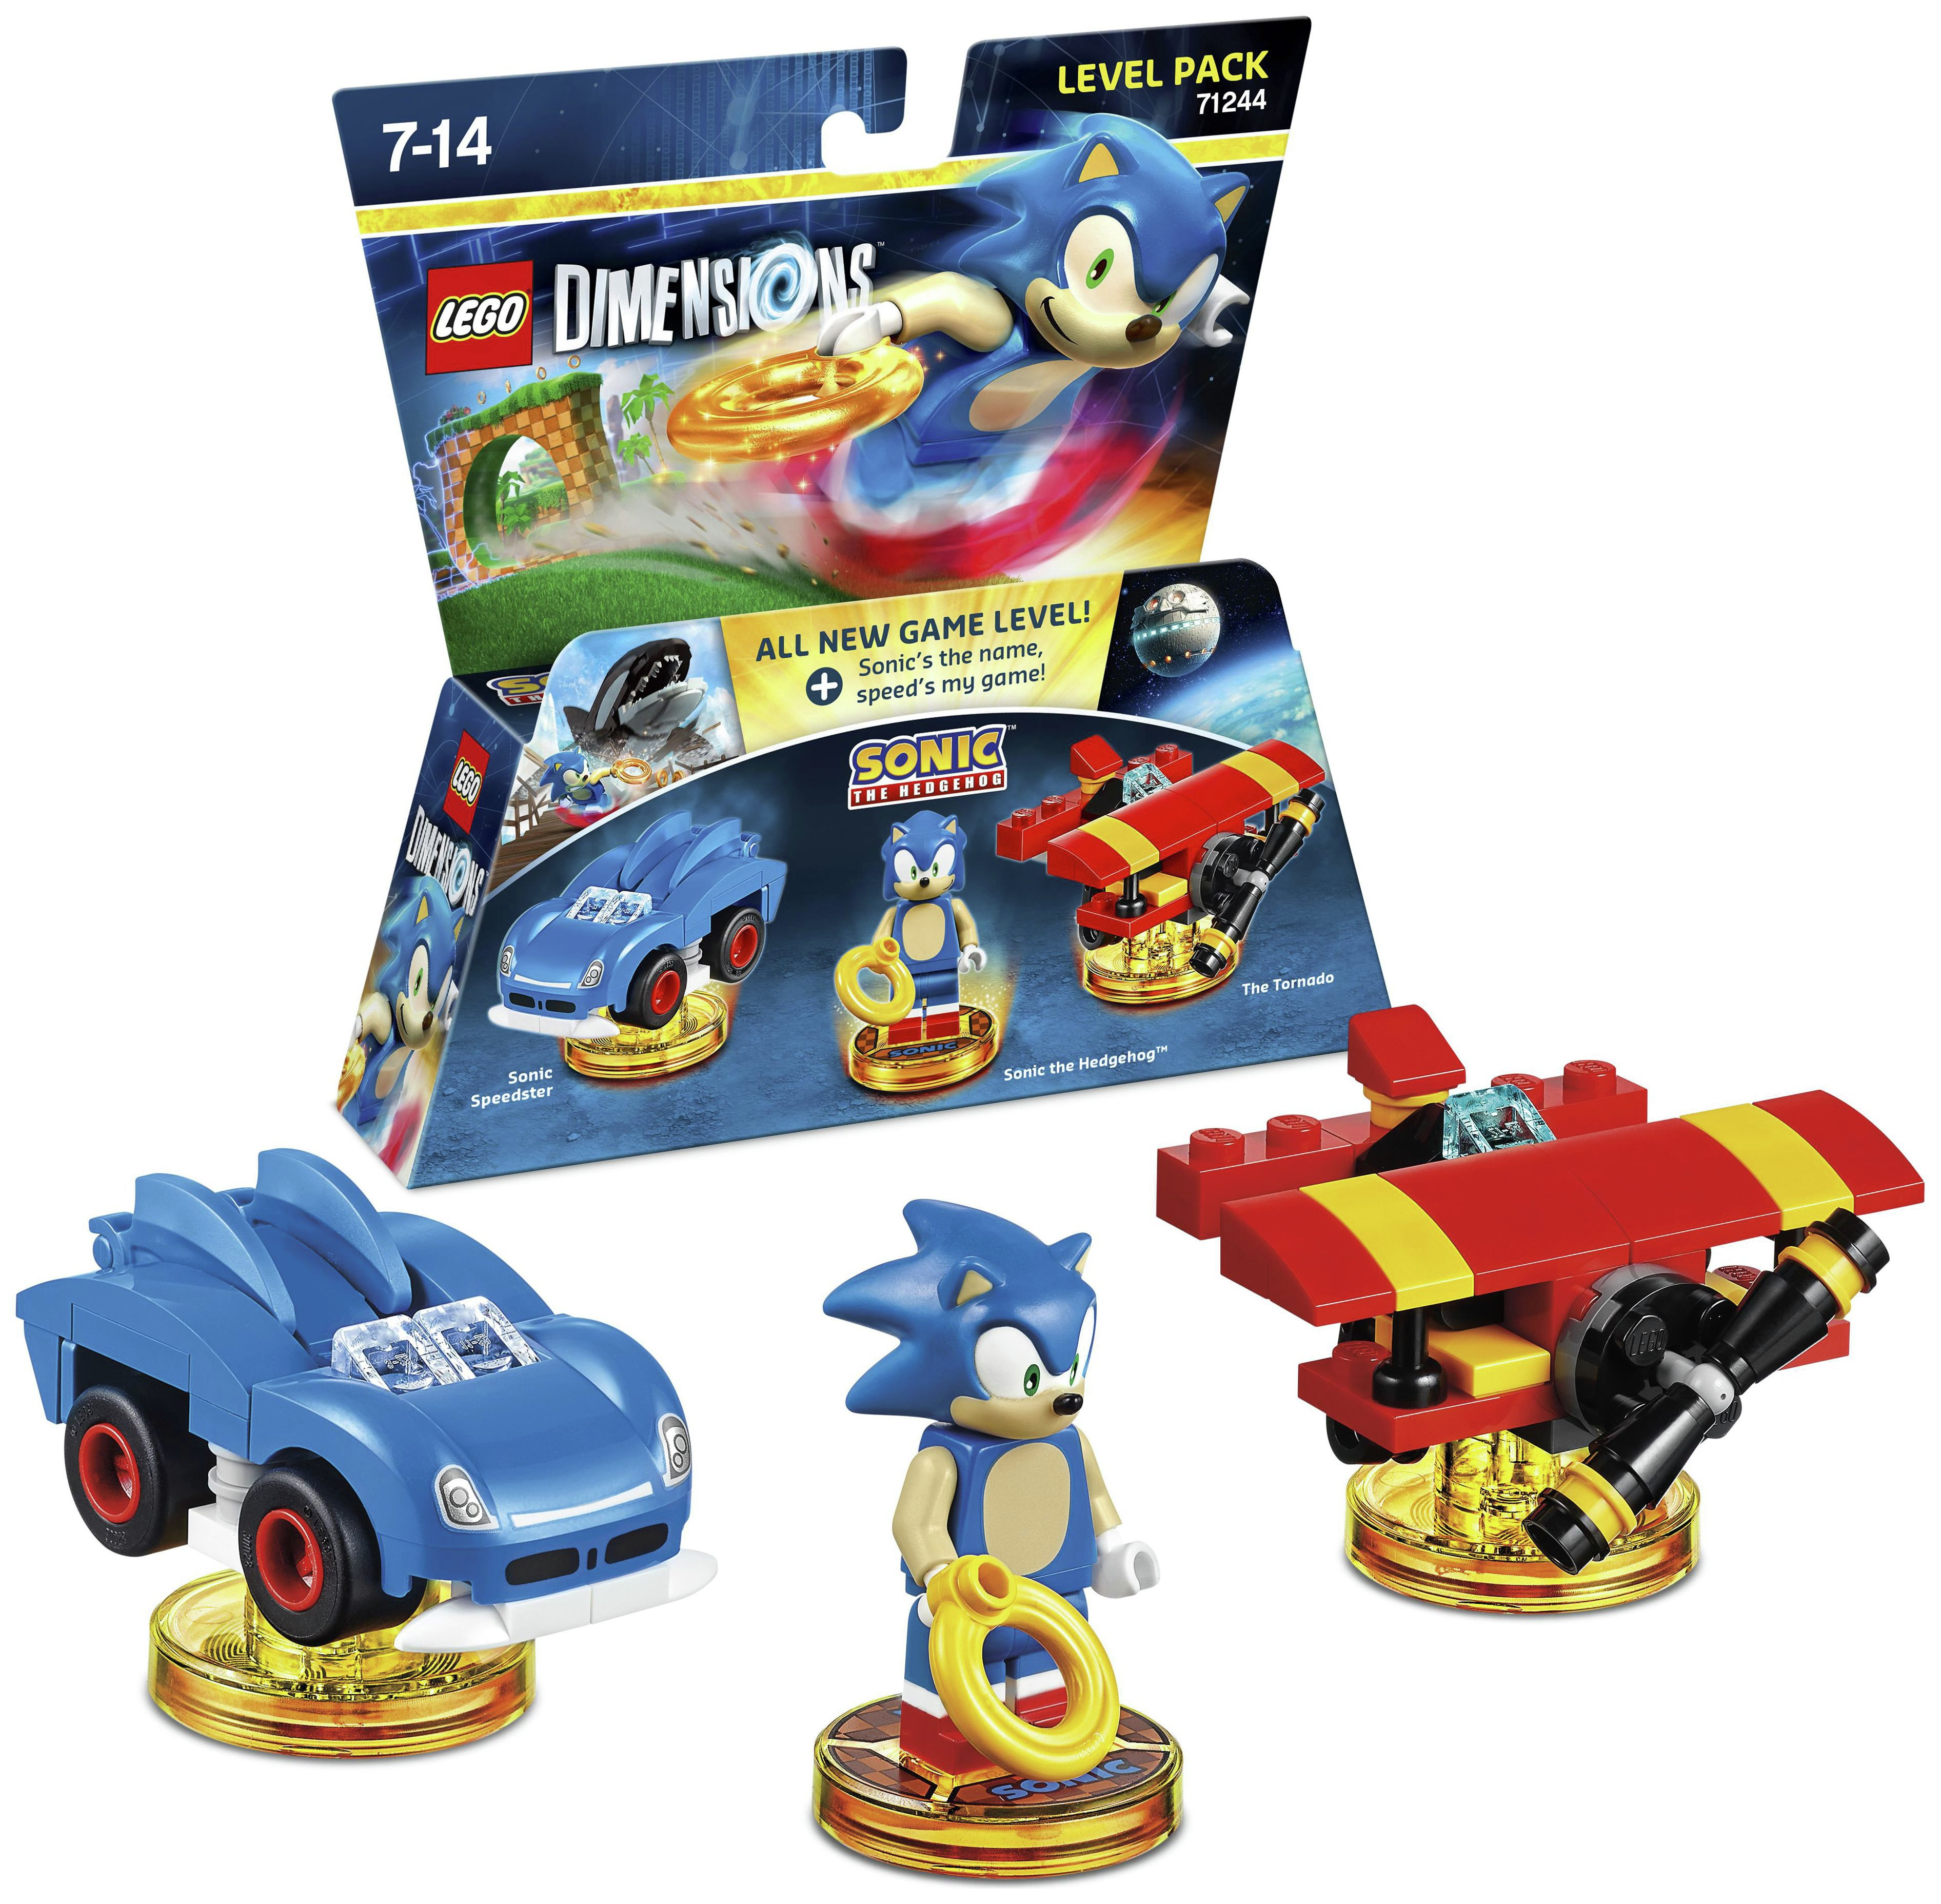 Buy LEGO Dimensions Sonic Level Pack at Argos.co.uk - Your Online ...